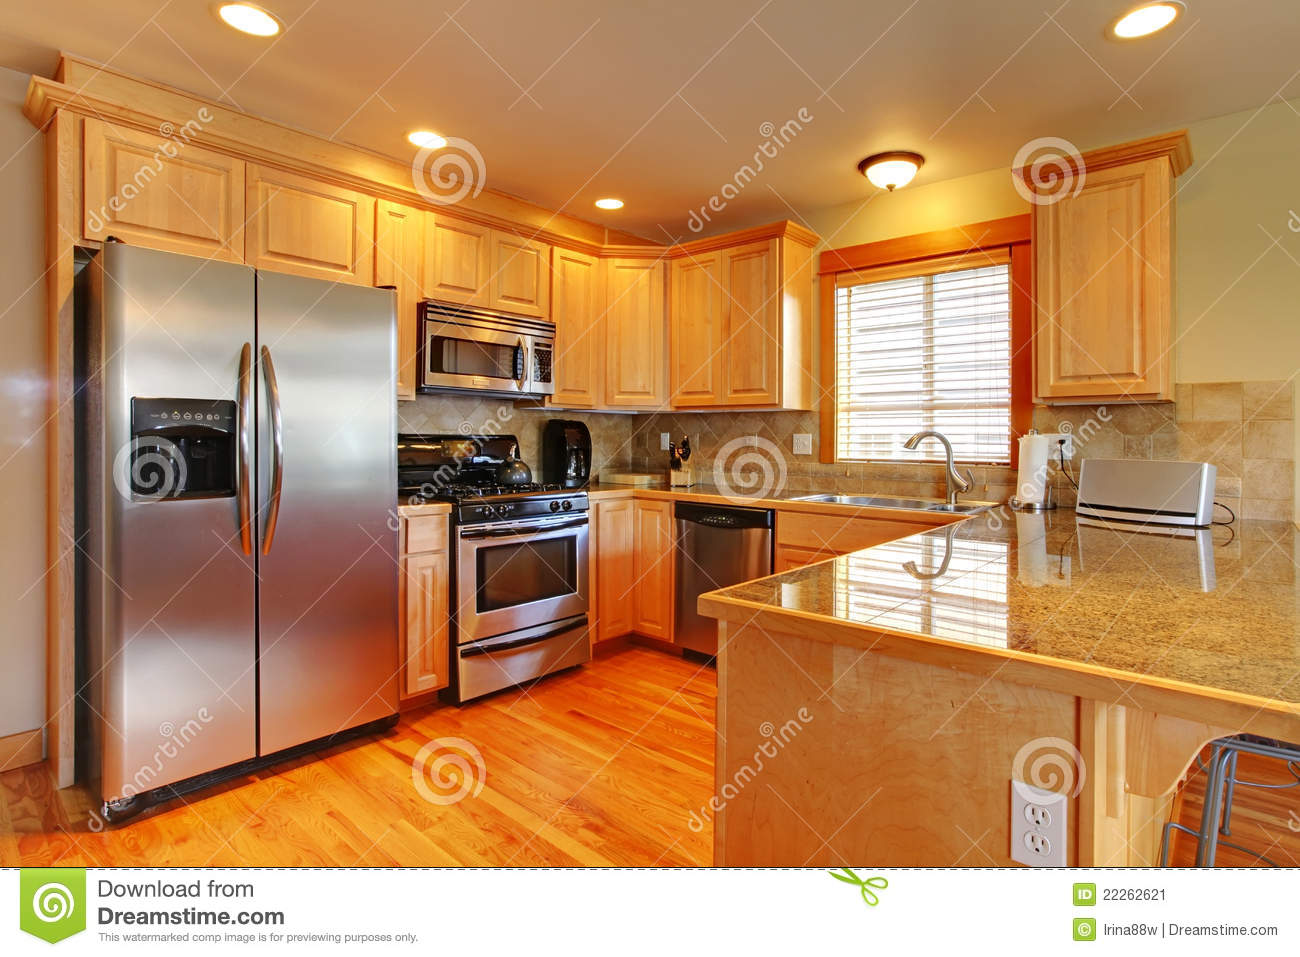 Golden Maple Beautiful Cabinets Kitchen Stock Image